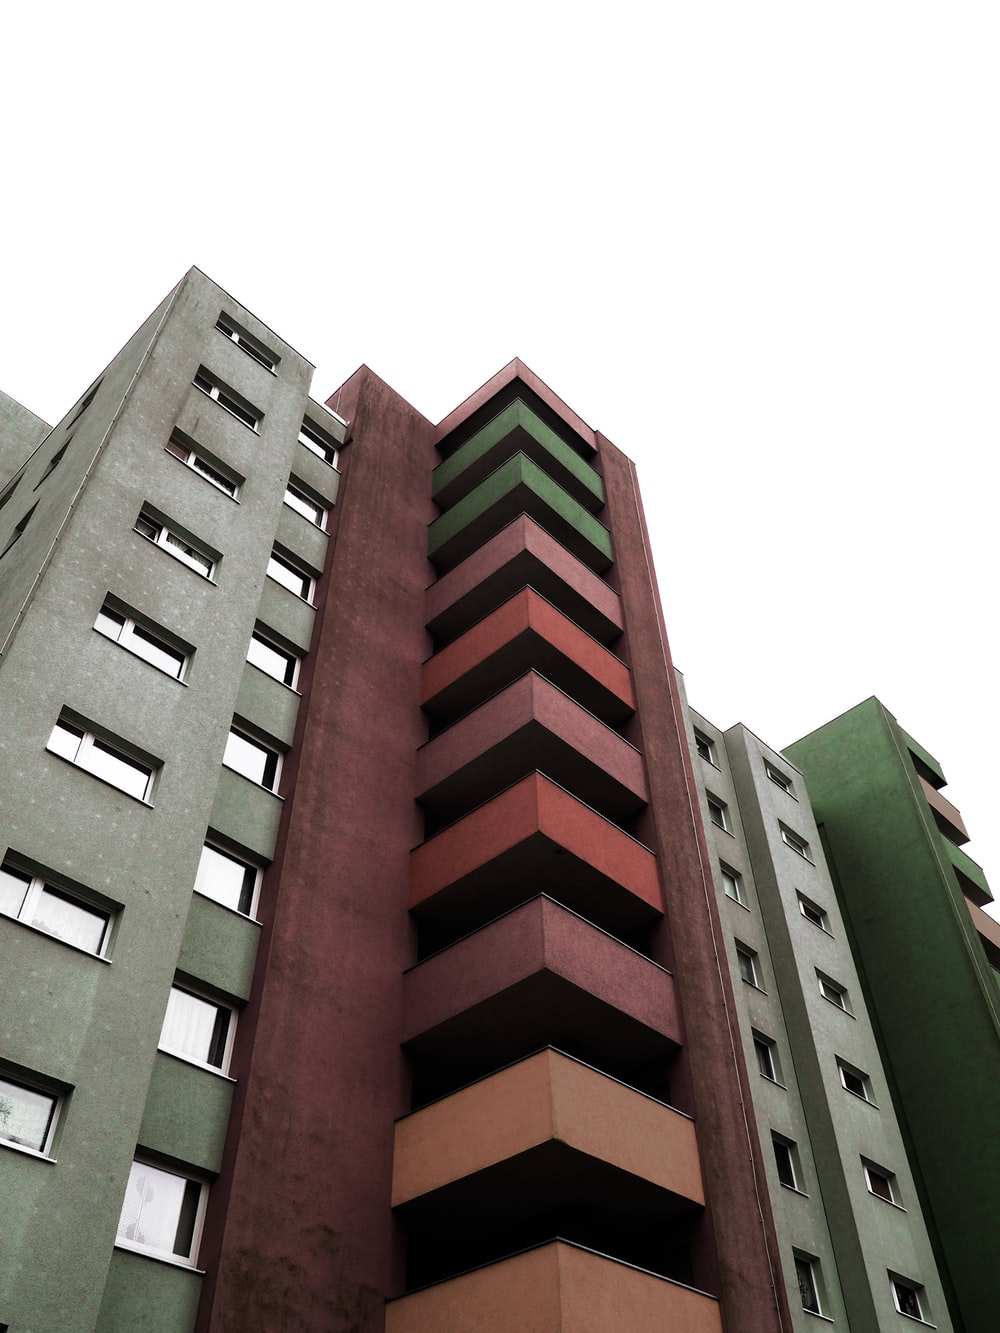 multicolored building during daytime